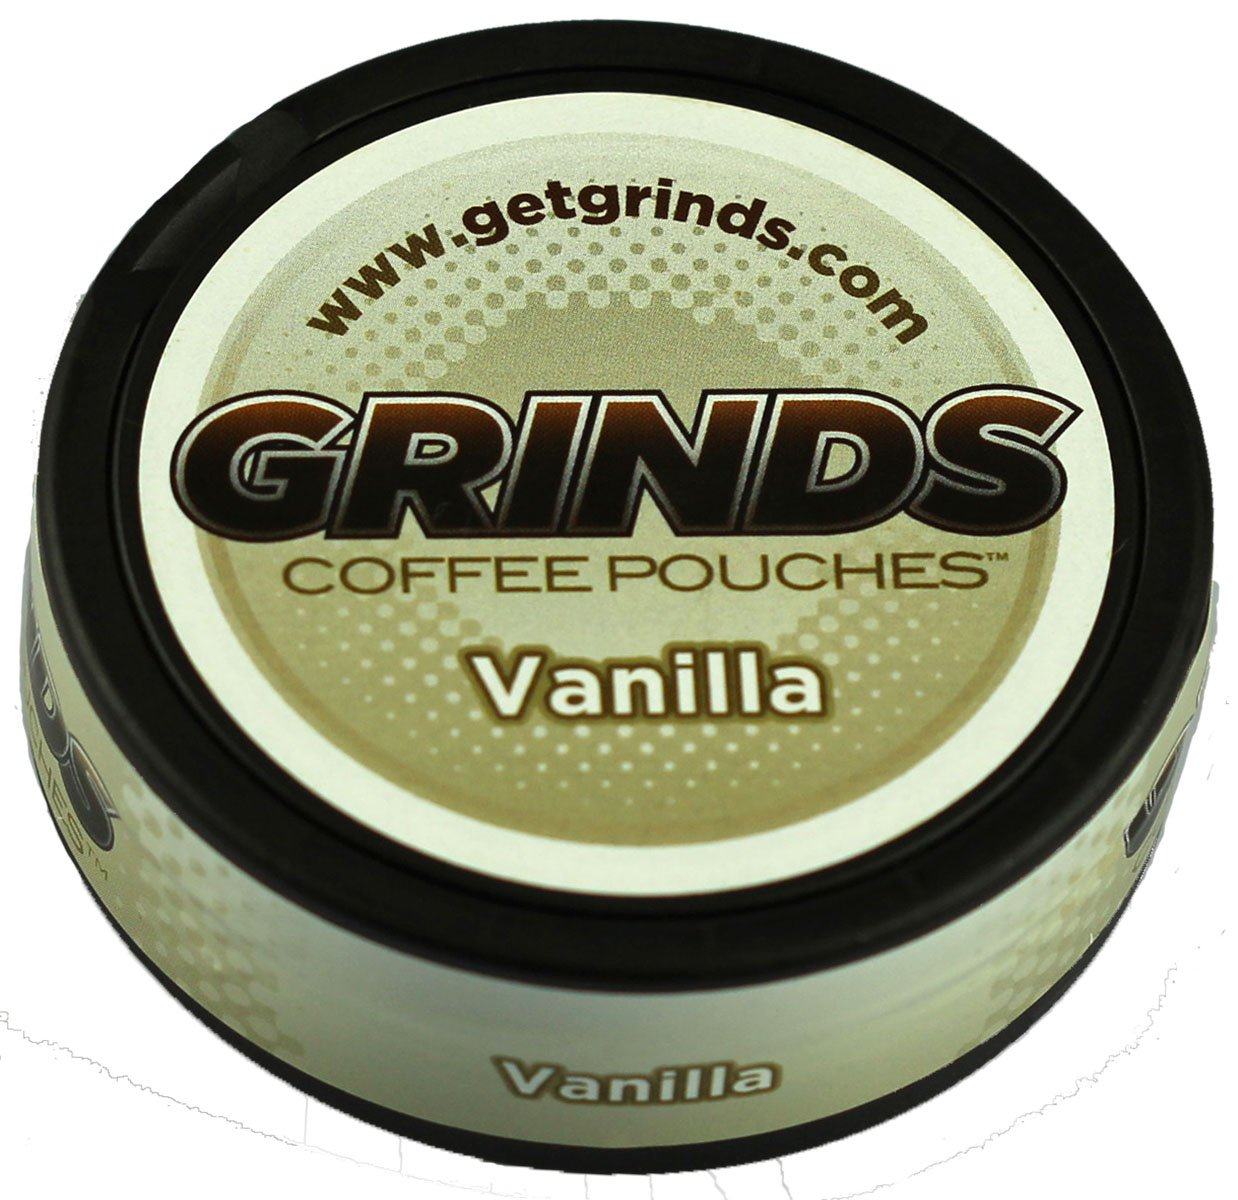 Grinds Coffee Pouches - 3 Cans - Vanilla - Tobacco Free, Nicotine Free Healthy Alternative